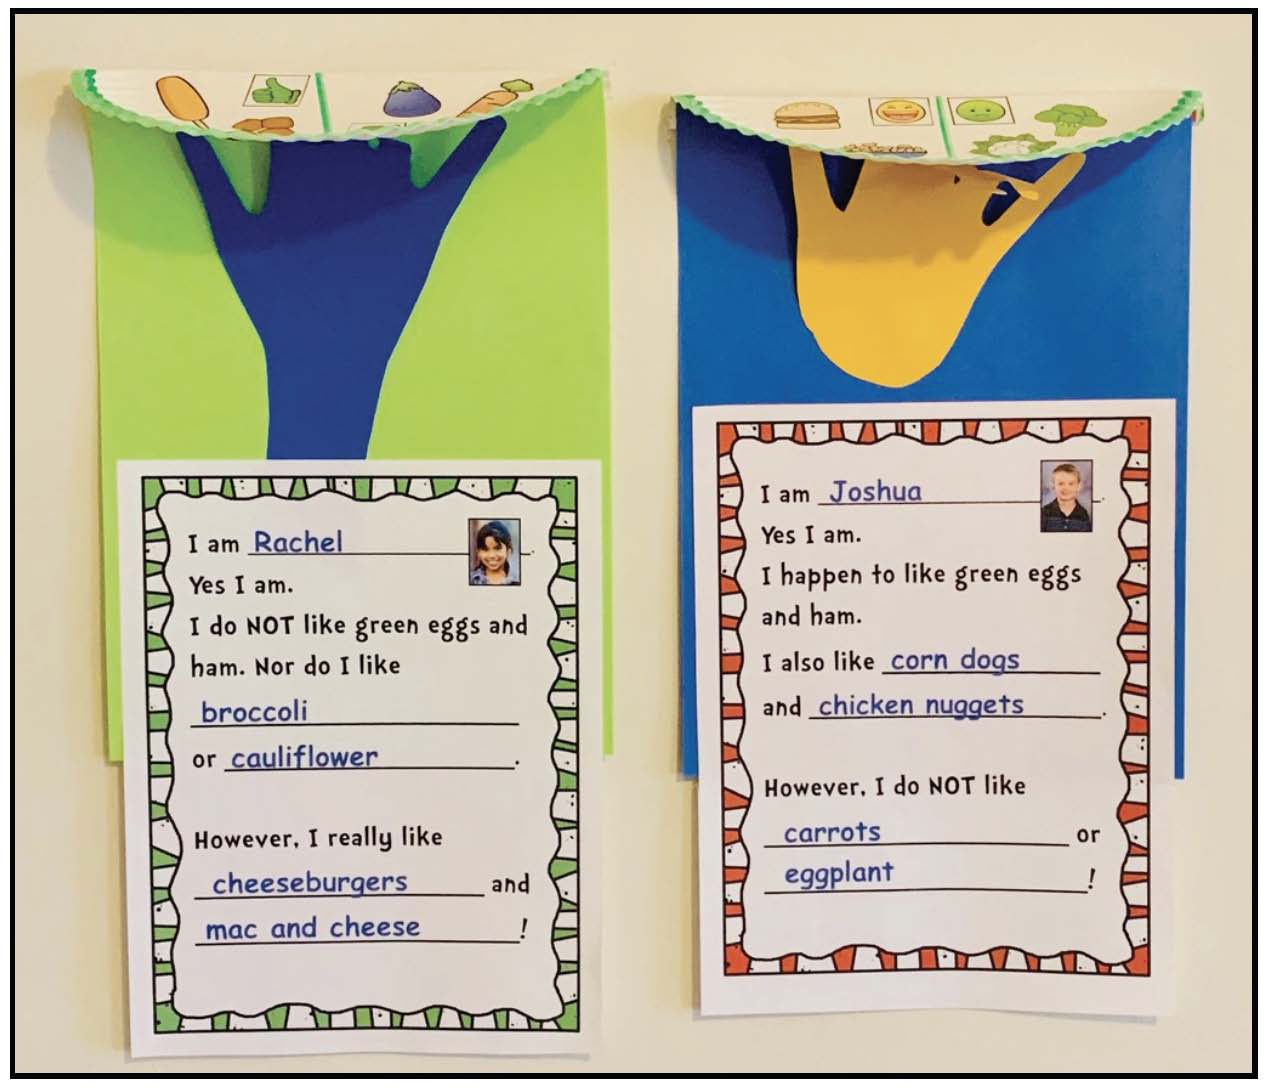 green eggs and ham paper plate craft, green eggs and ham writing prompt worksheet, green eggs and ham graph, dr. seuss activities, dr. seuss crafts, green eggs and ham activities, green eggs and ham crafts, march writing prompts, read across america bulletin boards, seuss bulletin boards, seuss writing prompts